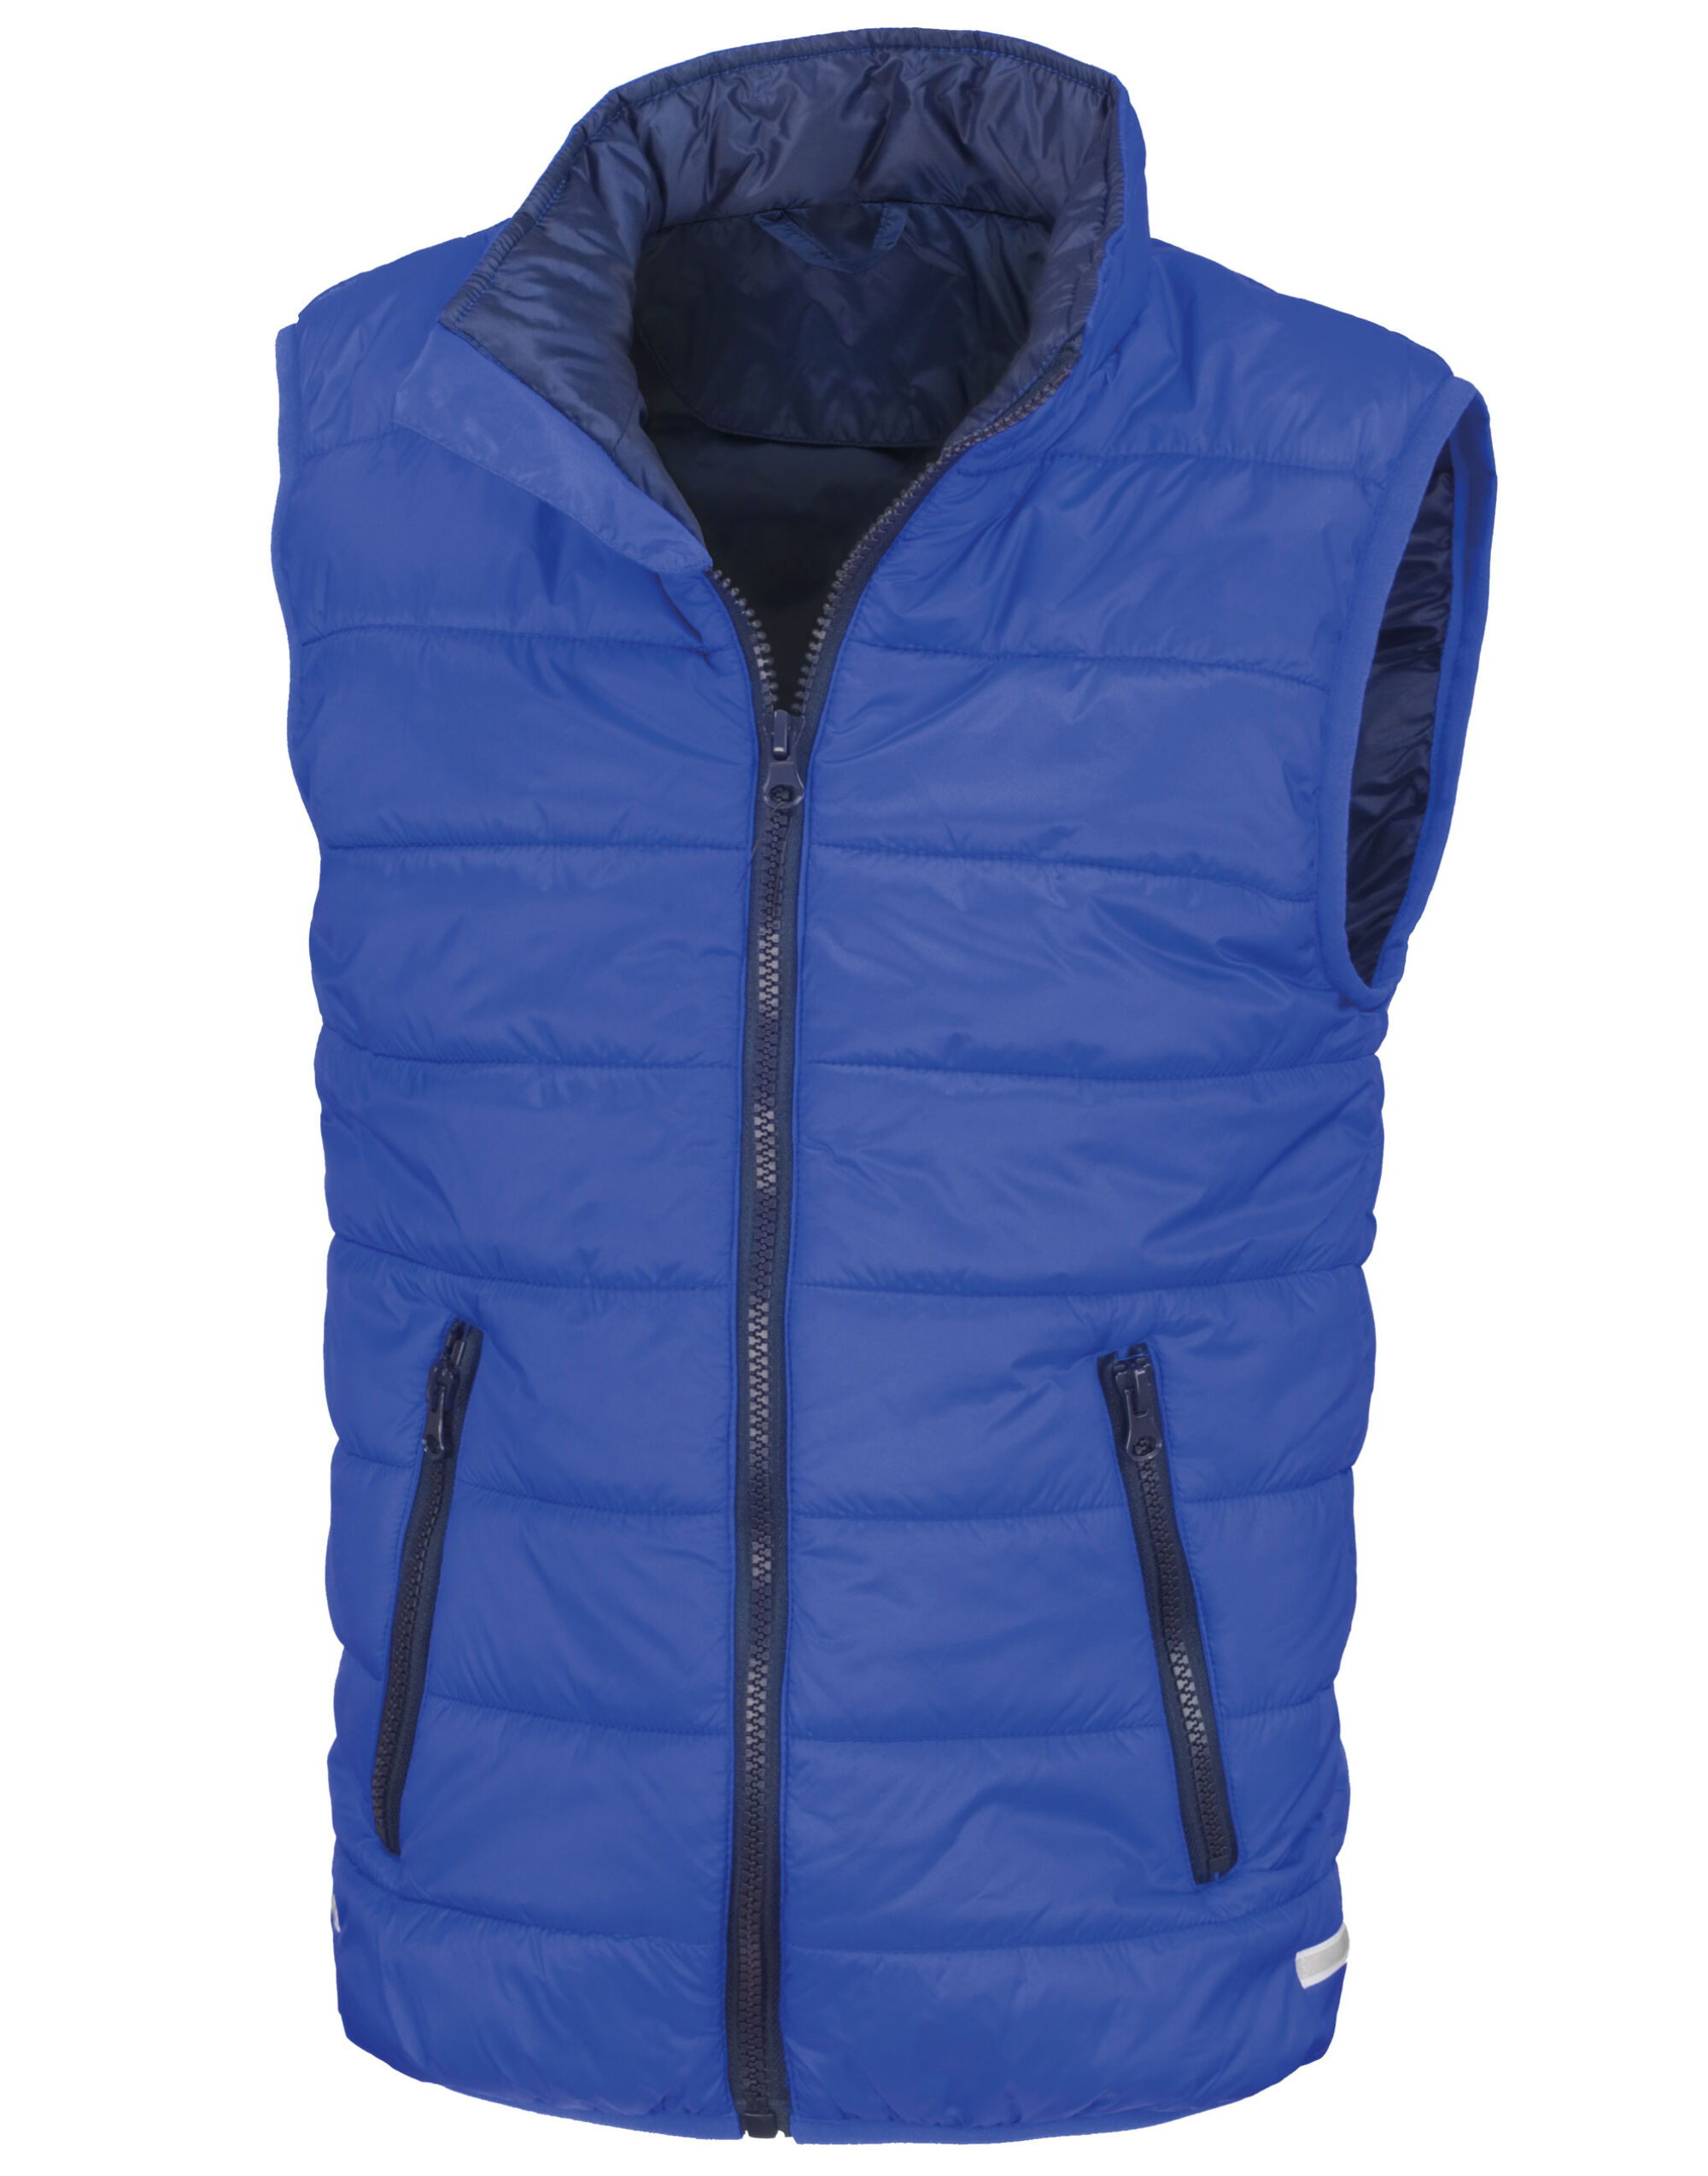 Childs Padded Bodywarmer